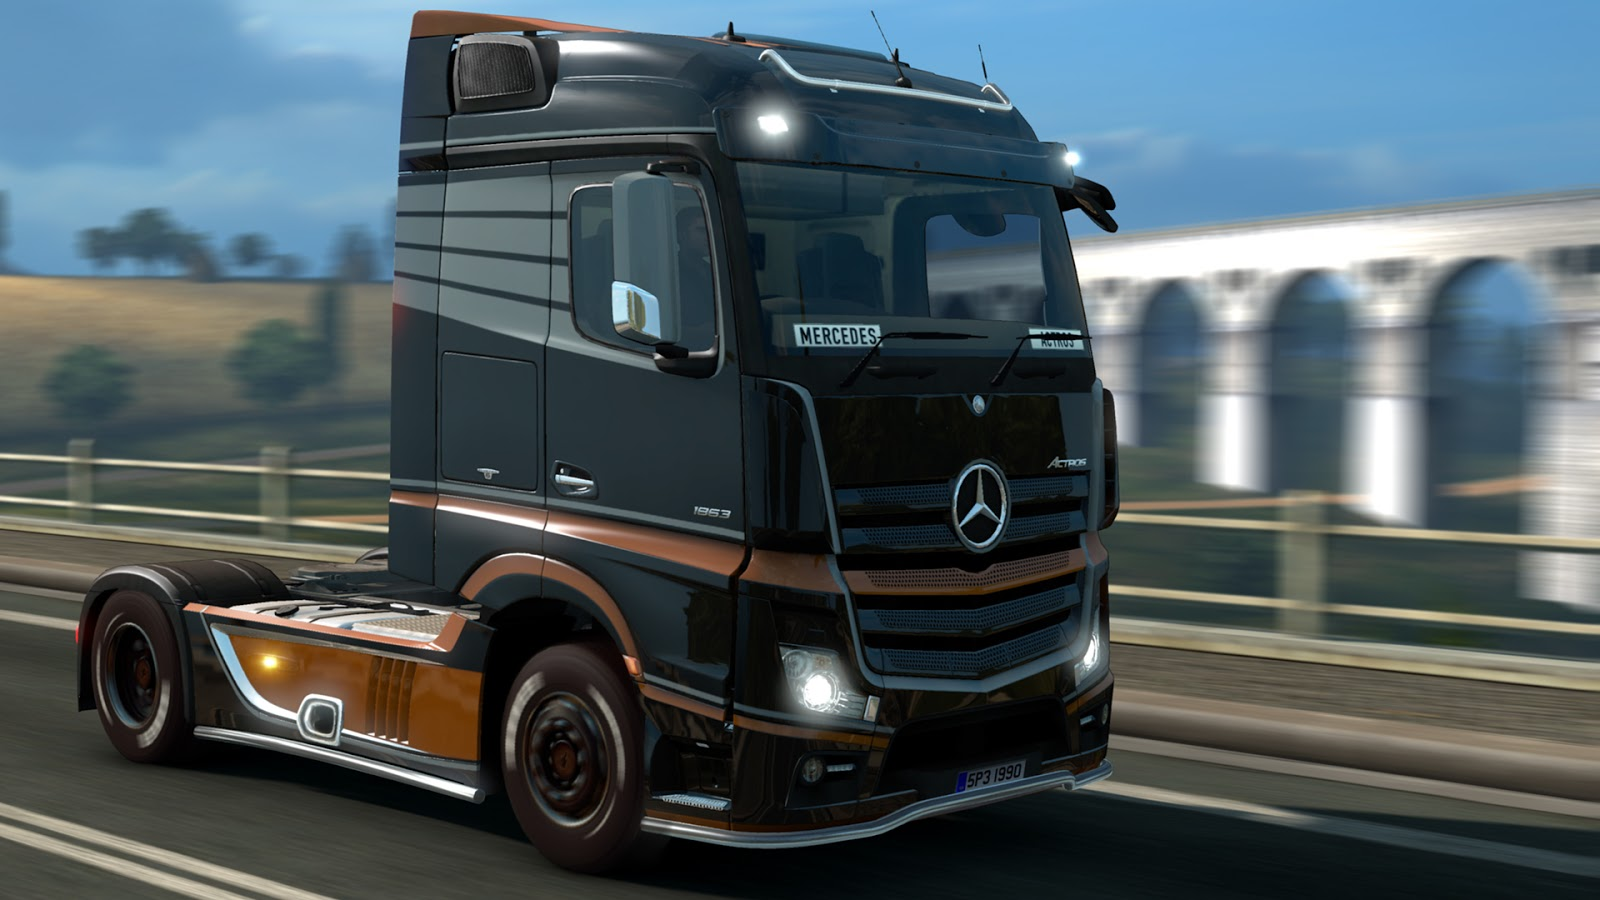 scs software 39 s blog get behind the wheel of mercedes benz new actros right now update is ready. Black Bedroom Furniture Sets. Home Design Ideas